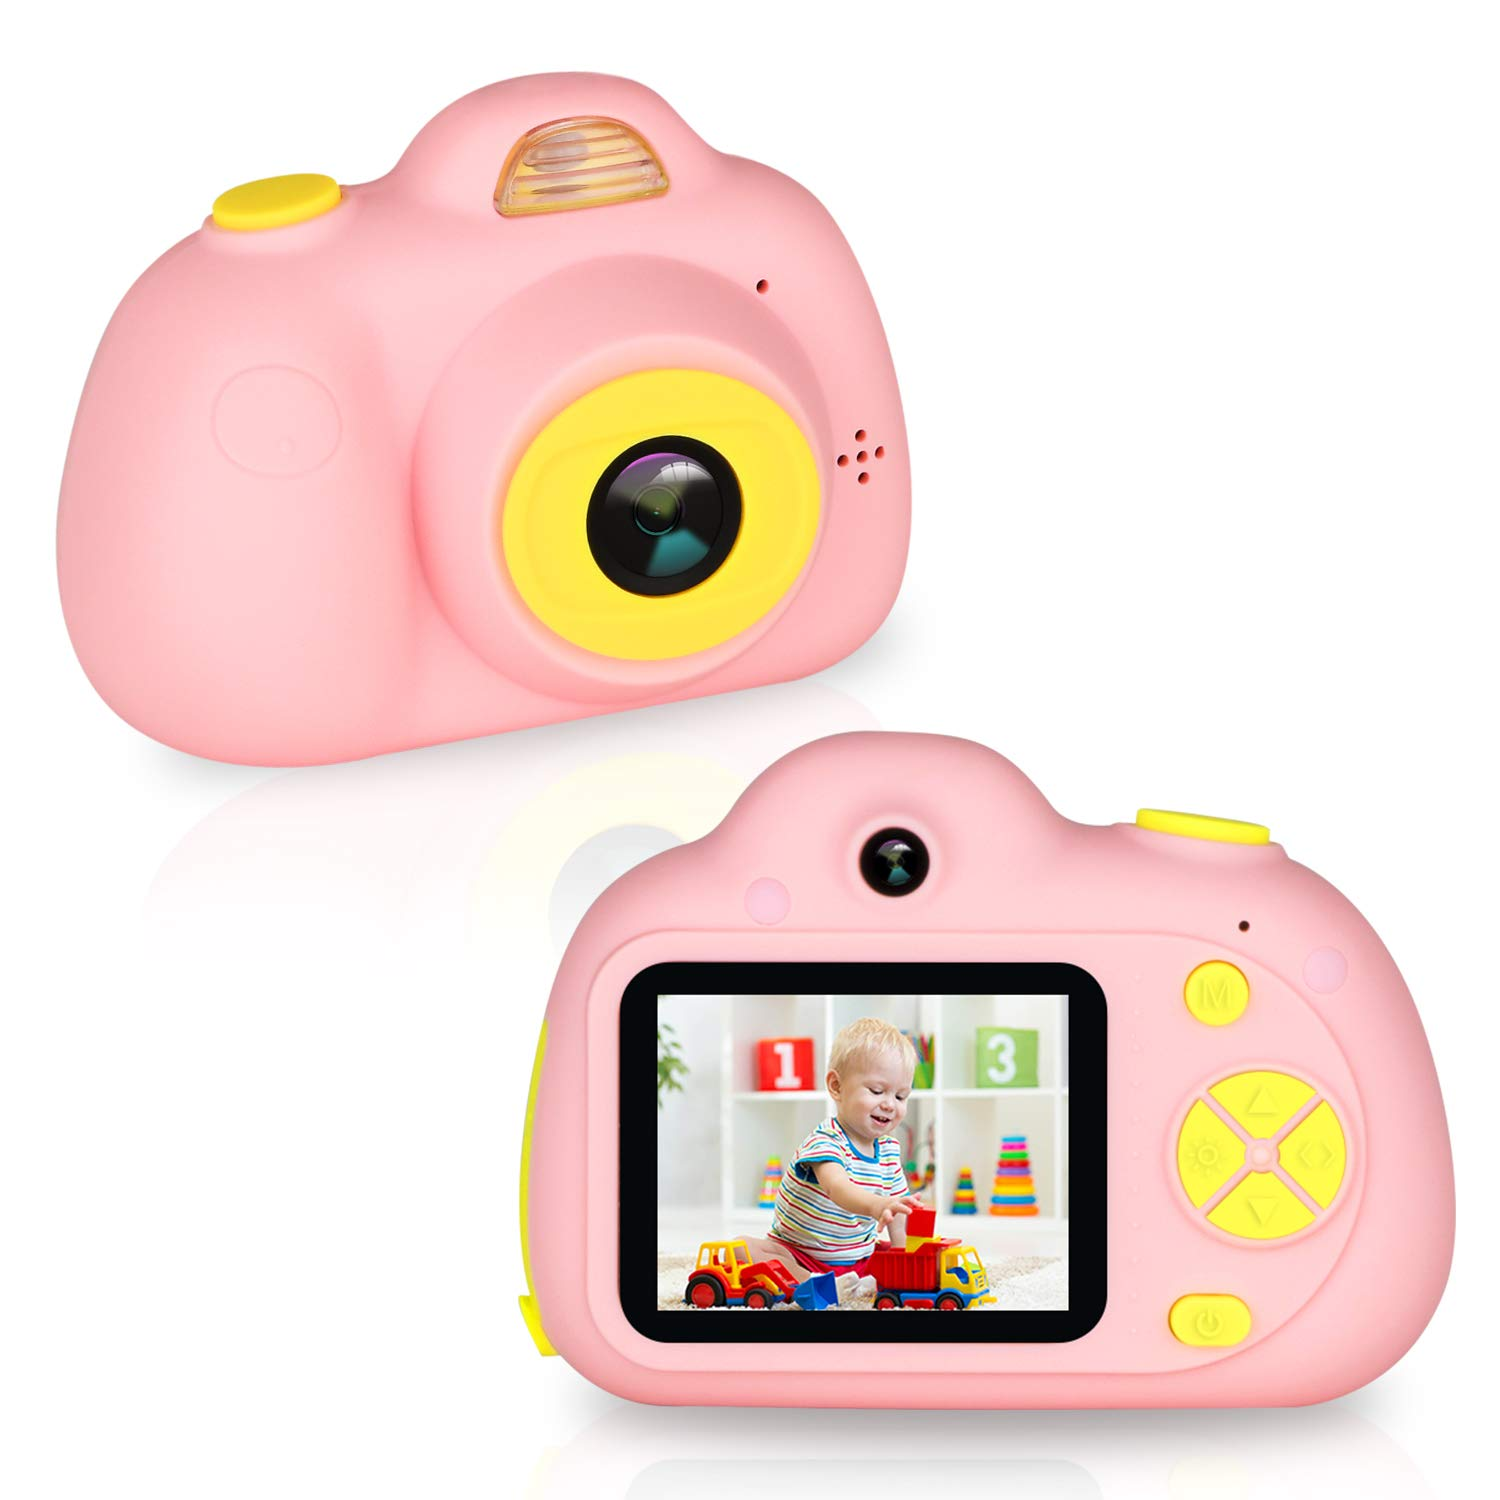 eyesen Kids Camera for 3-10 Year Old Children 1080P HD Rechargeable Digital Child Camcorder Shockproof Selfie Mini Camera with Soft Silicone Shell and 2 Inch Screen for Kids, Pink by eyesen (Image #6)